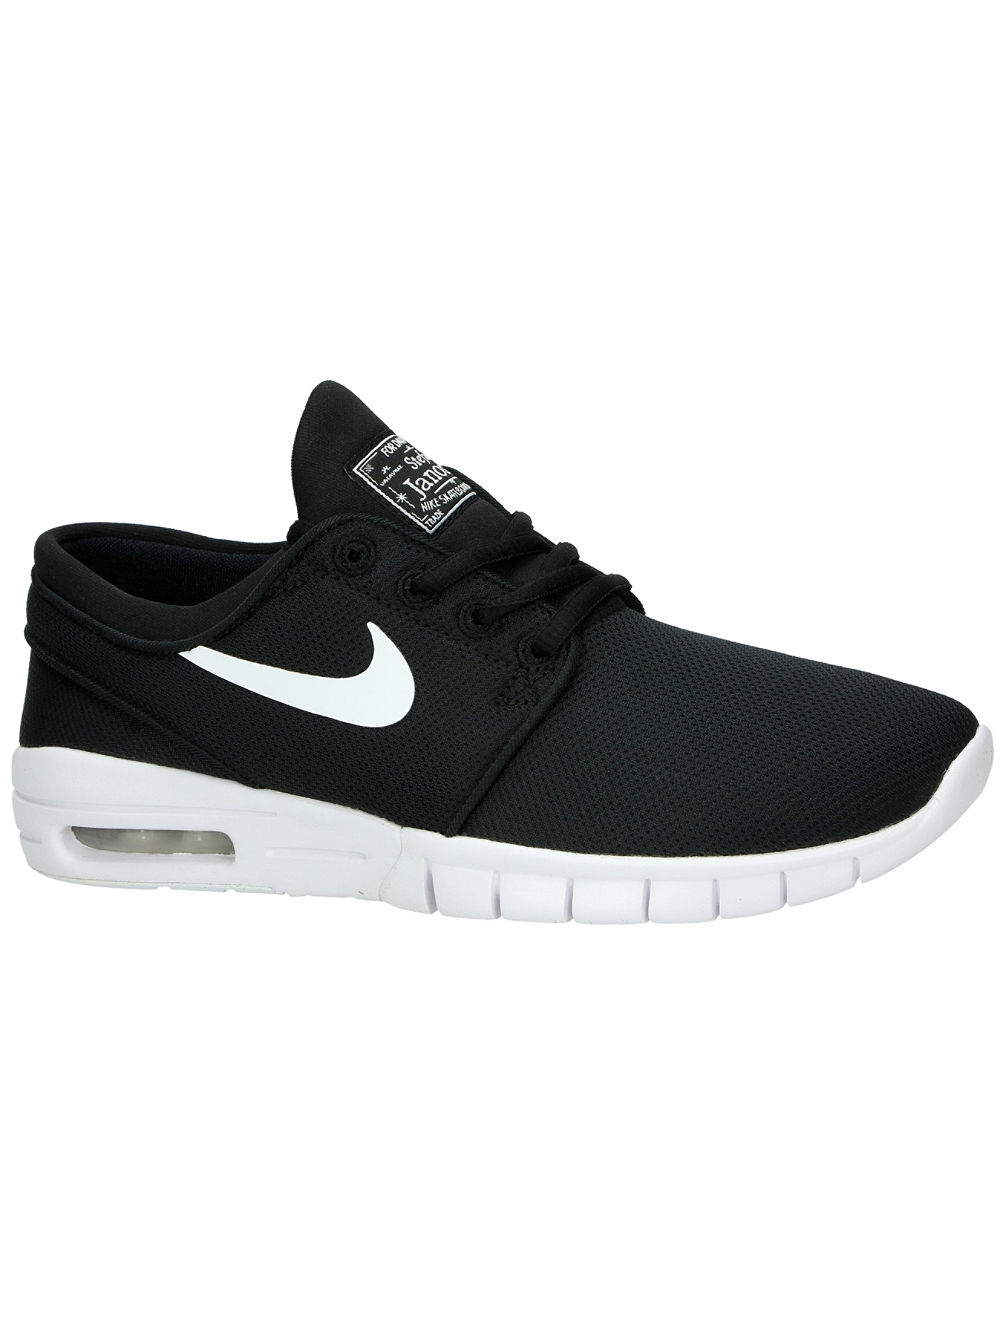 48a17cfe20ba Buy Nike Stefan Janoski Max GS Sneakers online at blue-tomato.com